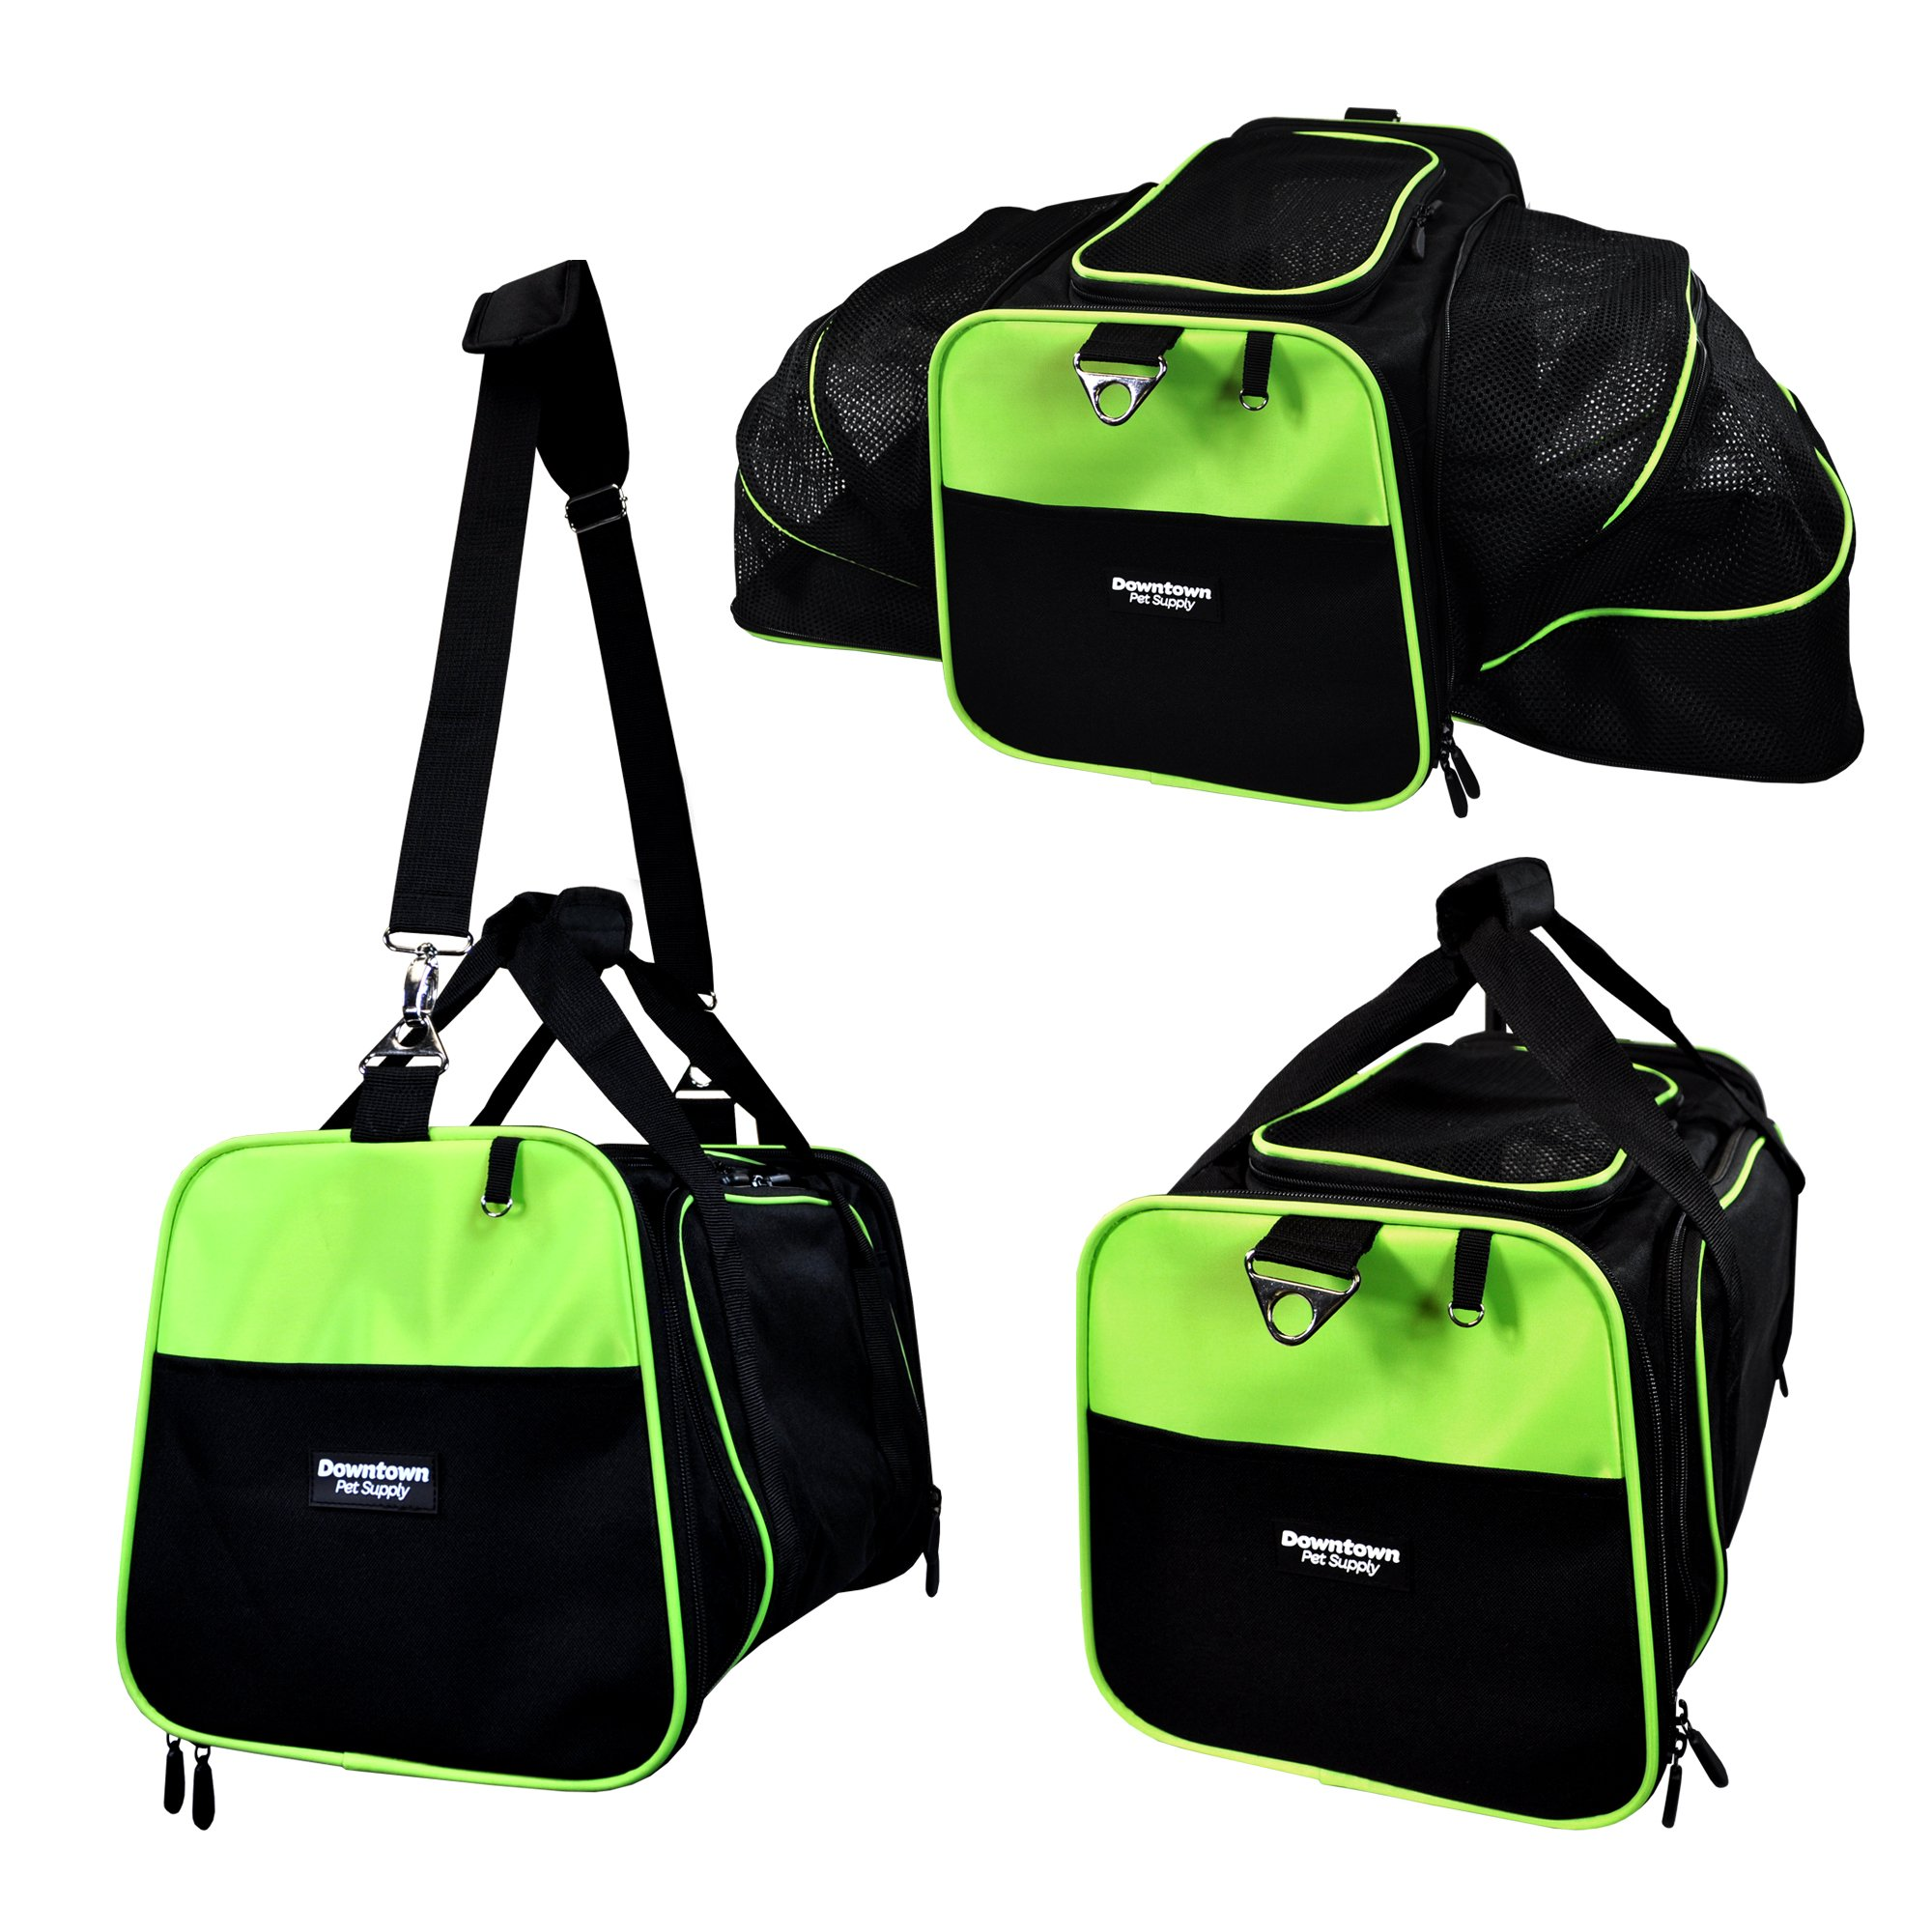 DTPS - Expandable Foldable Airline Approved Pet Travel Carrier for Small Dogs and Cats